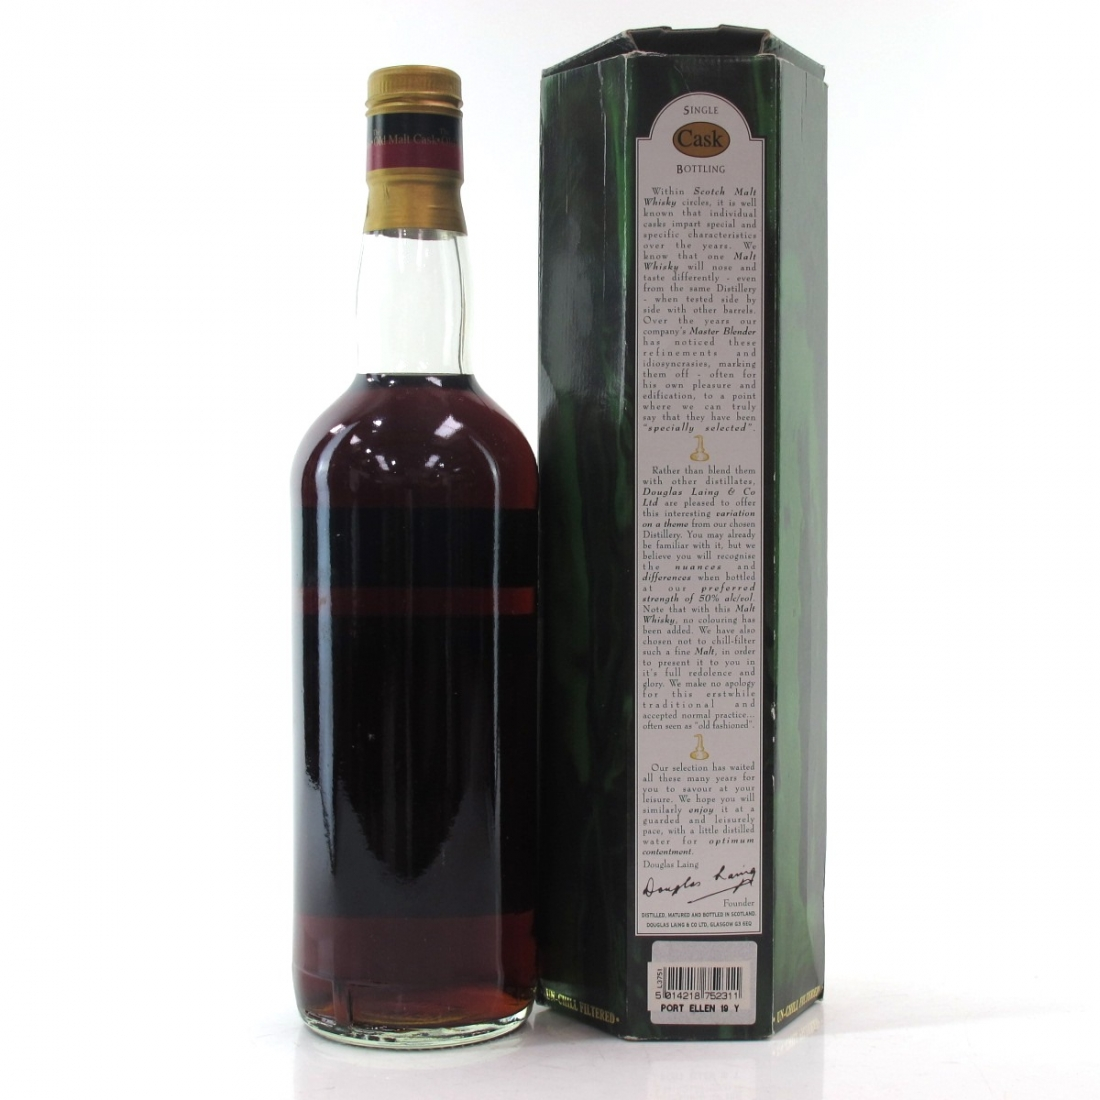 Port Ellen 1982 Douglas Laing 19 Year Old Cask Strength / German Exclusive